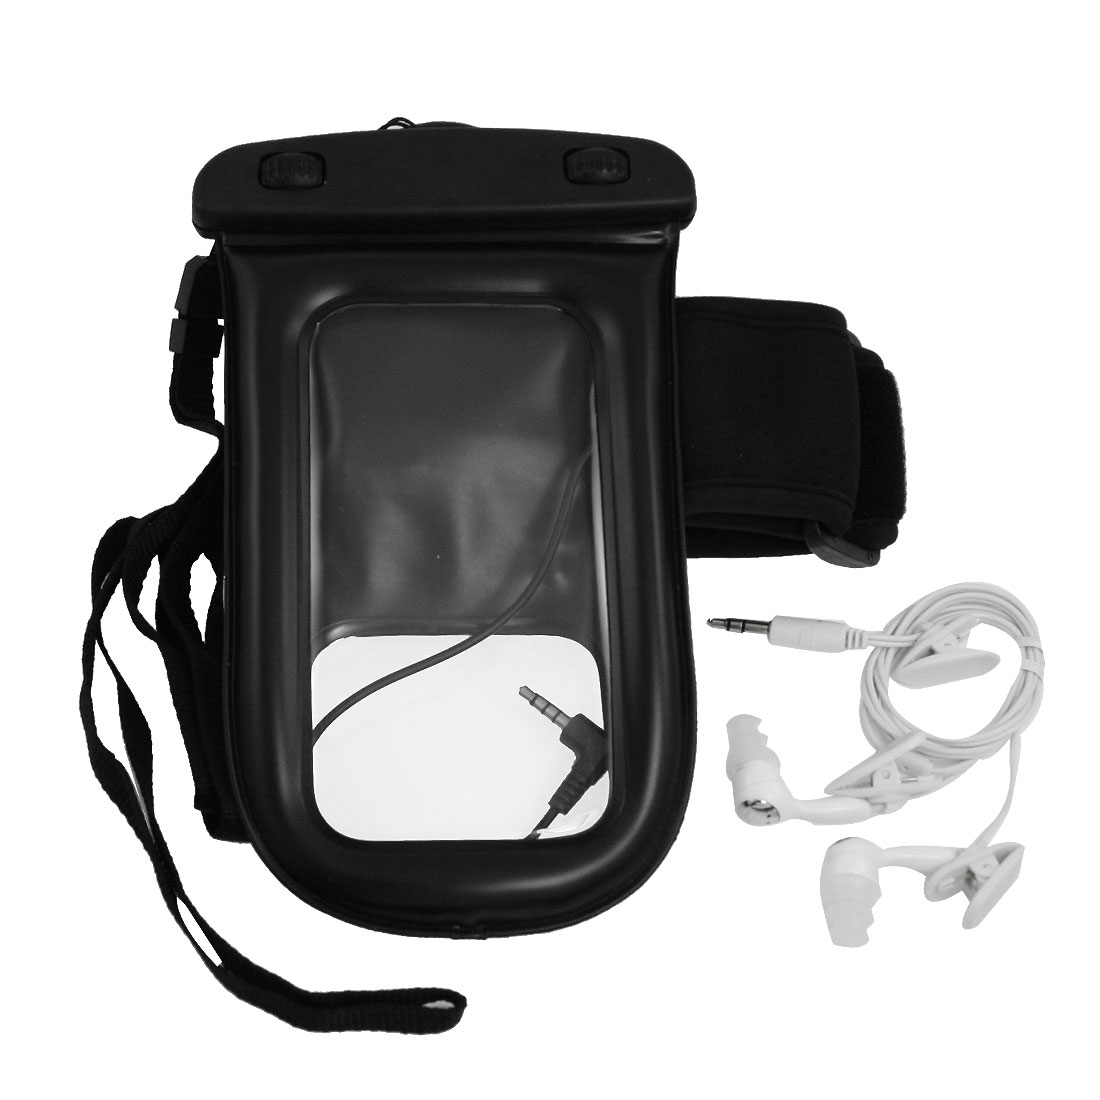 Soft Plastic Water Resistant Bag Pouch Black w Armband Earphone for Cell Phone